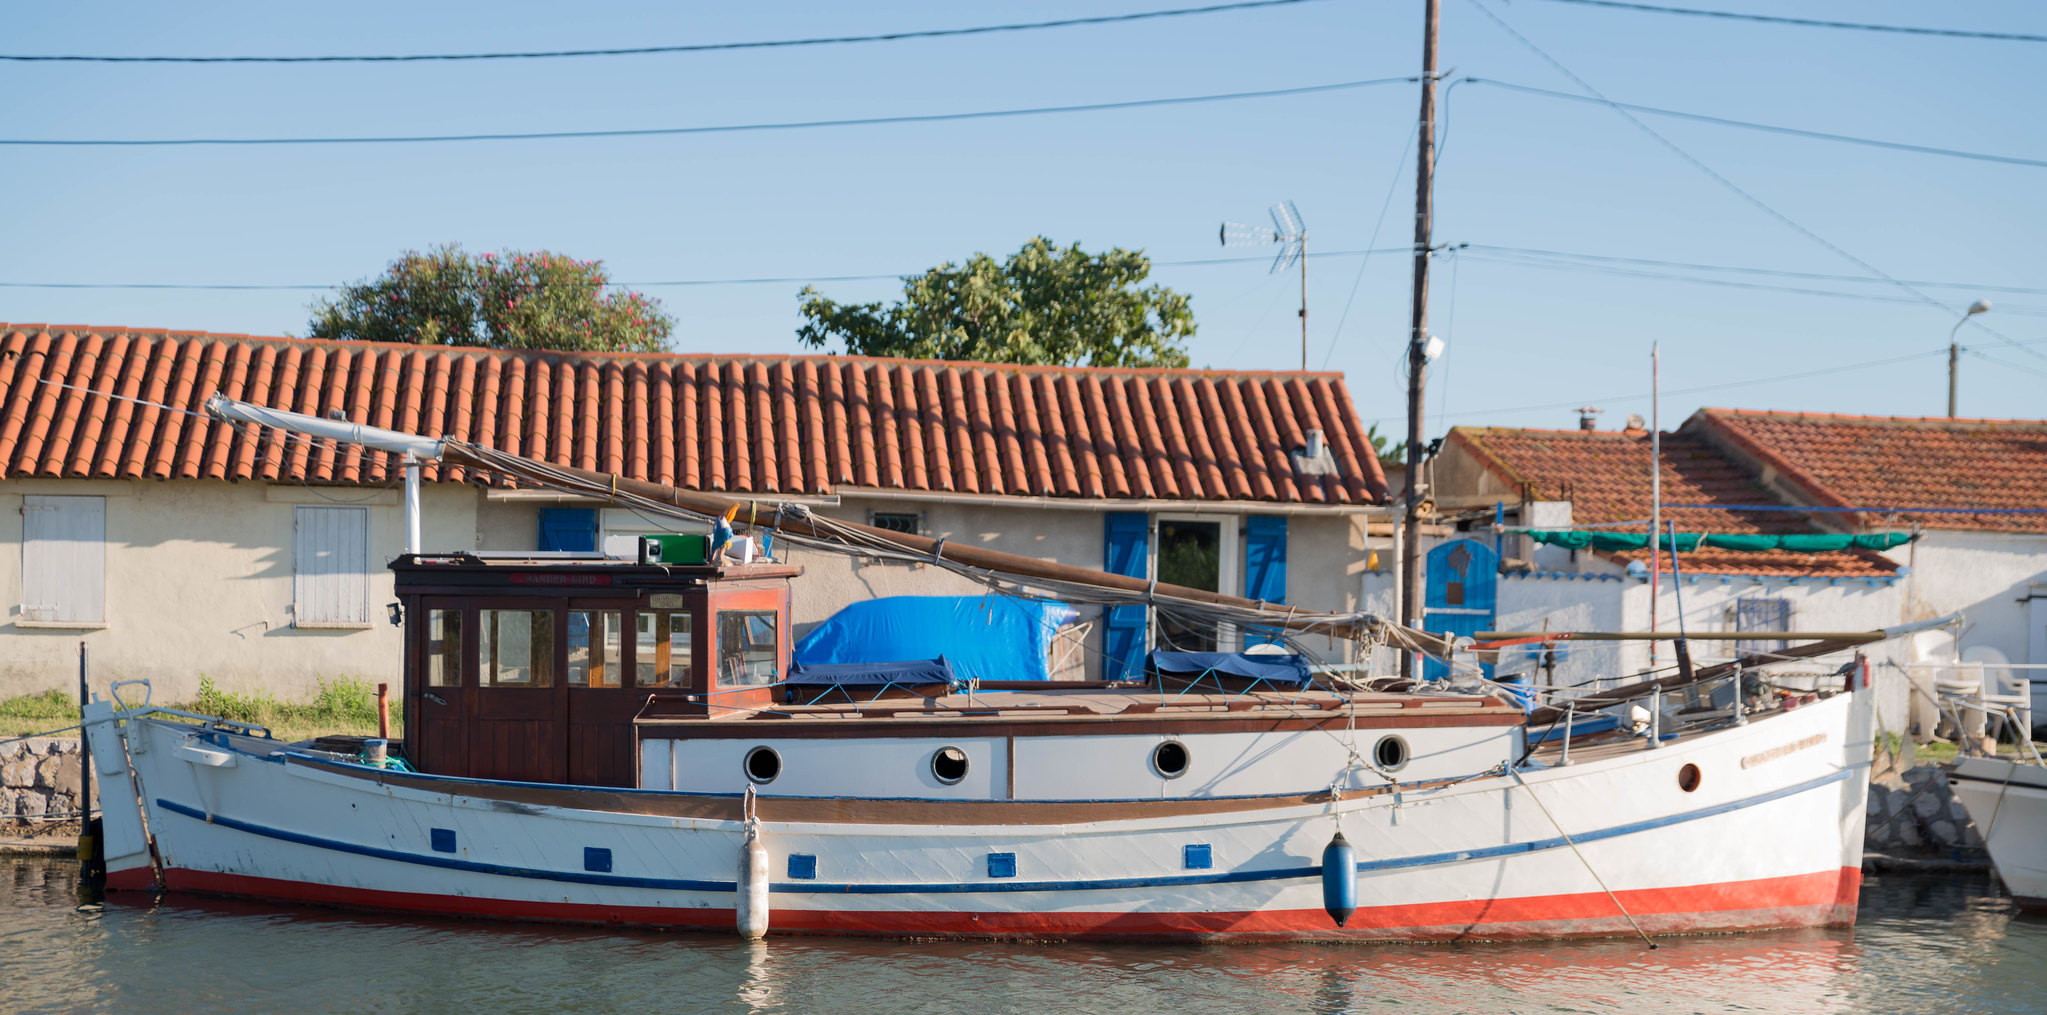 Old French fishing boat on the Sette Canal